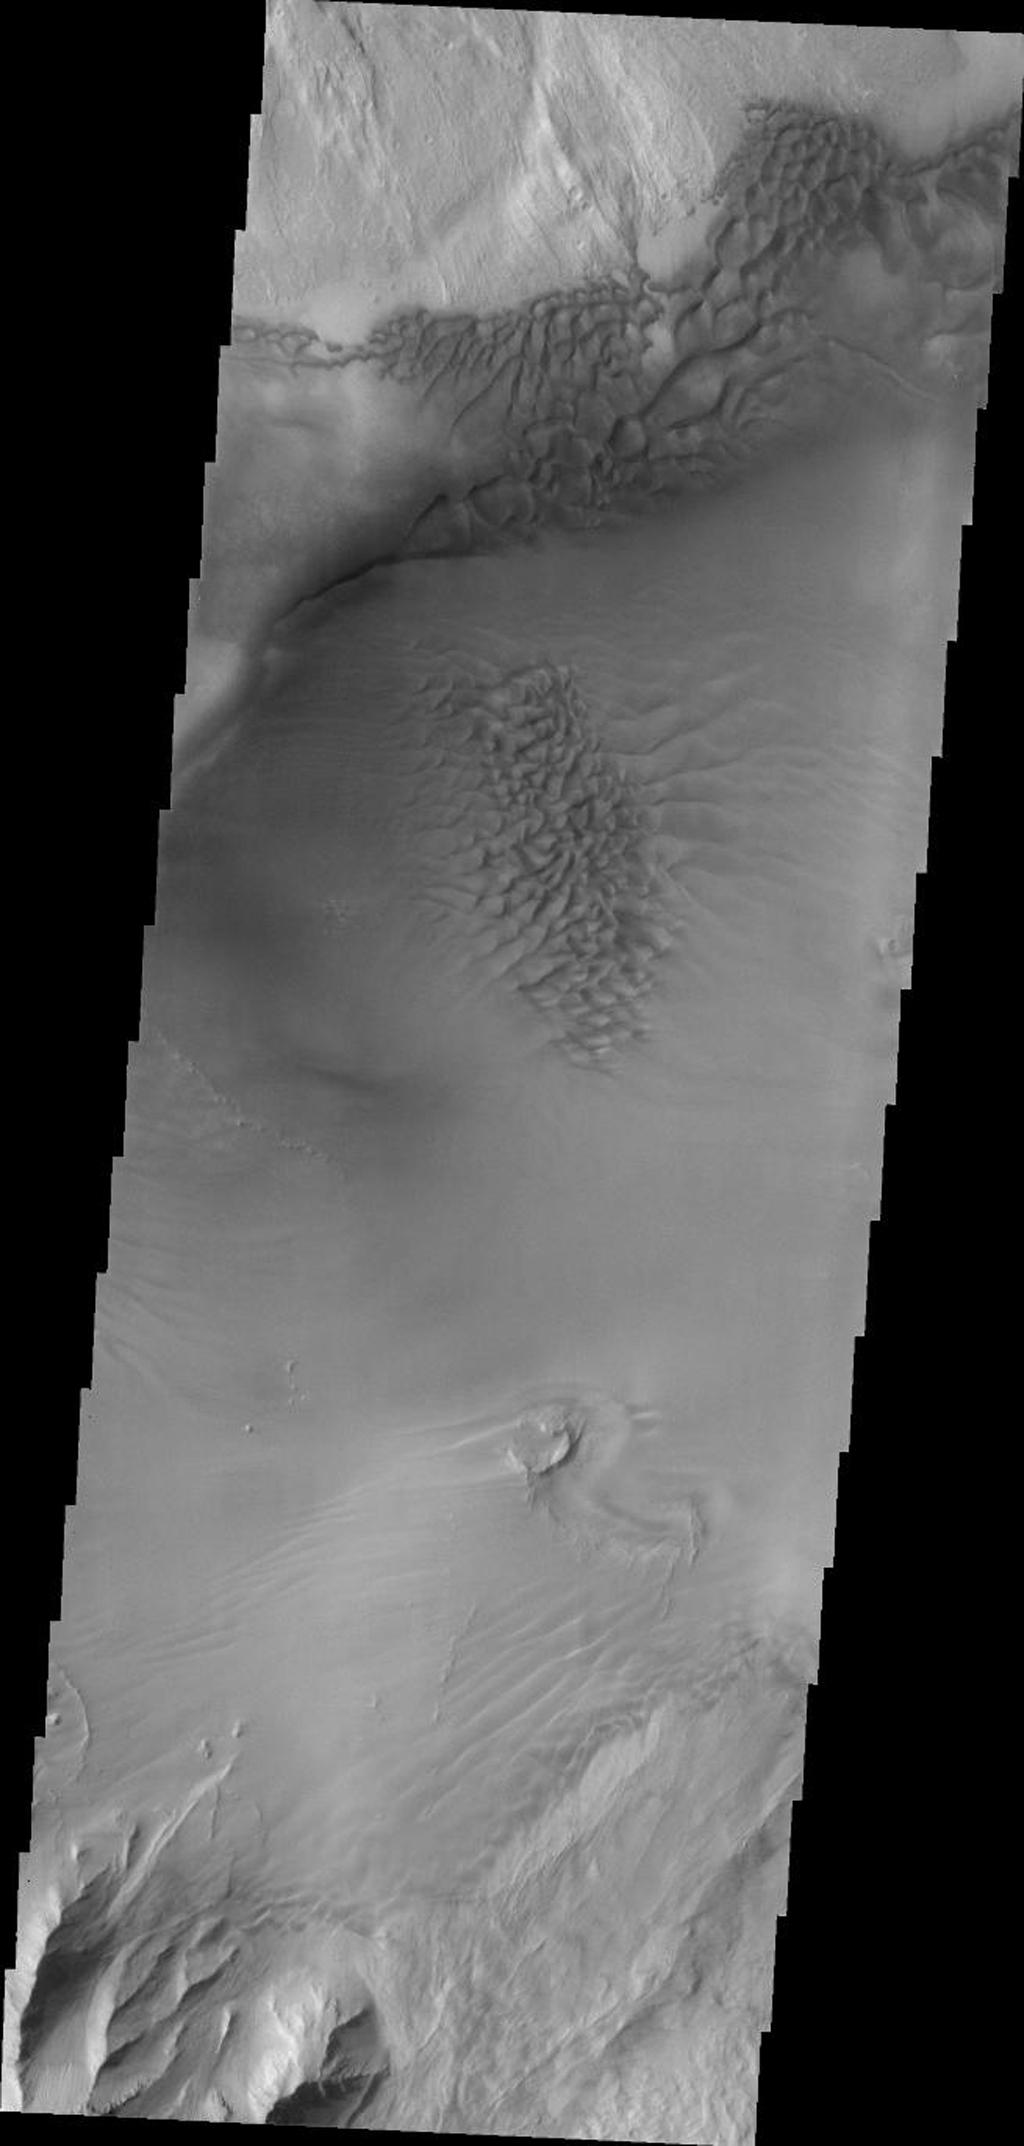 The sand sheet and dunes in this image, taken by NASA's 2001 Mars Odyssey spacecraft, are located on the floor of Juventae Chasma.